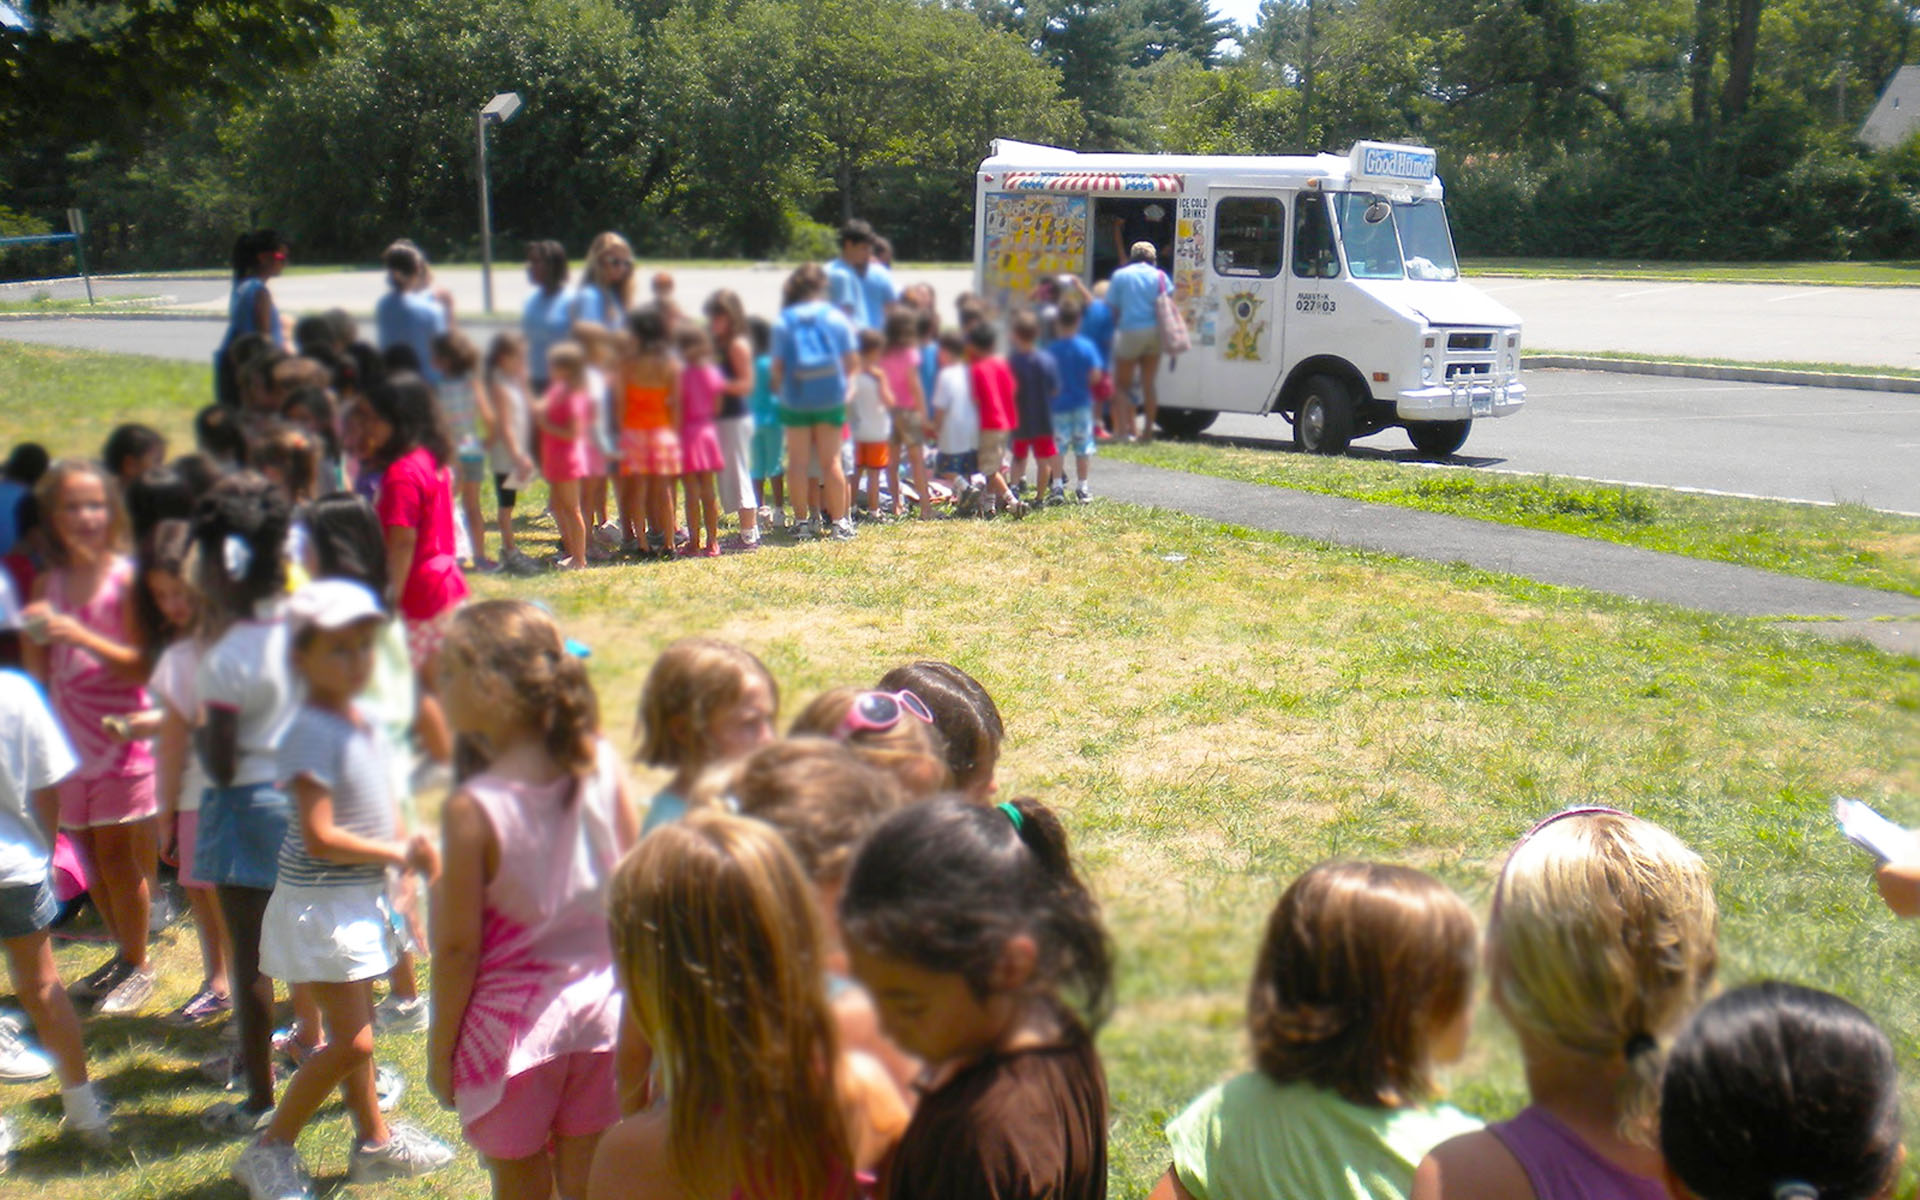 Ice cream for fun truck - New York summer - events - Photo gallery